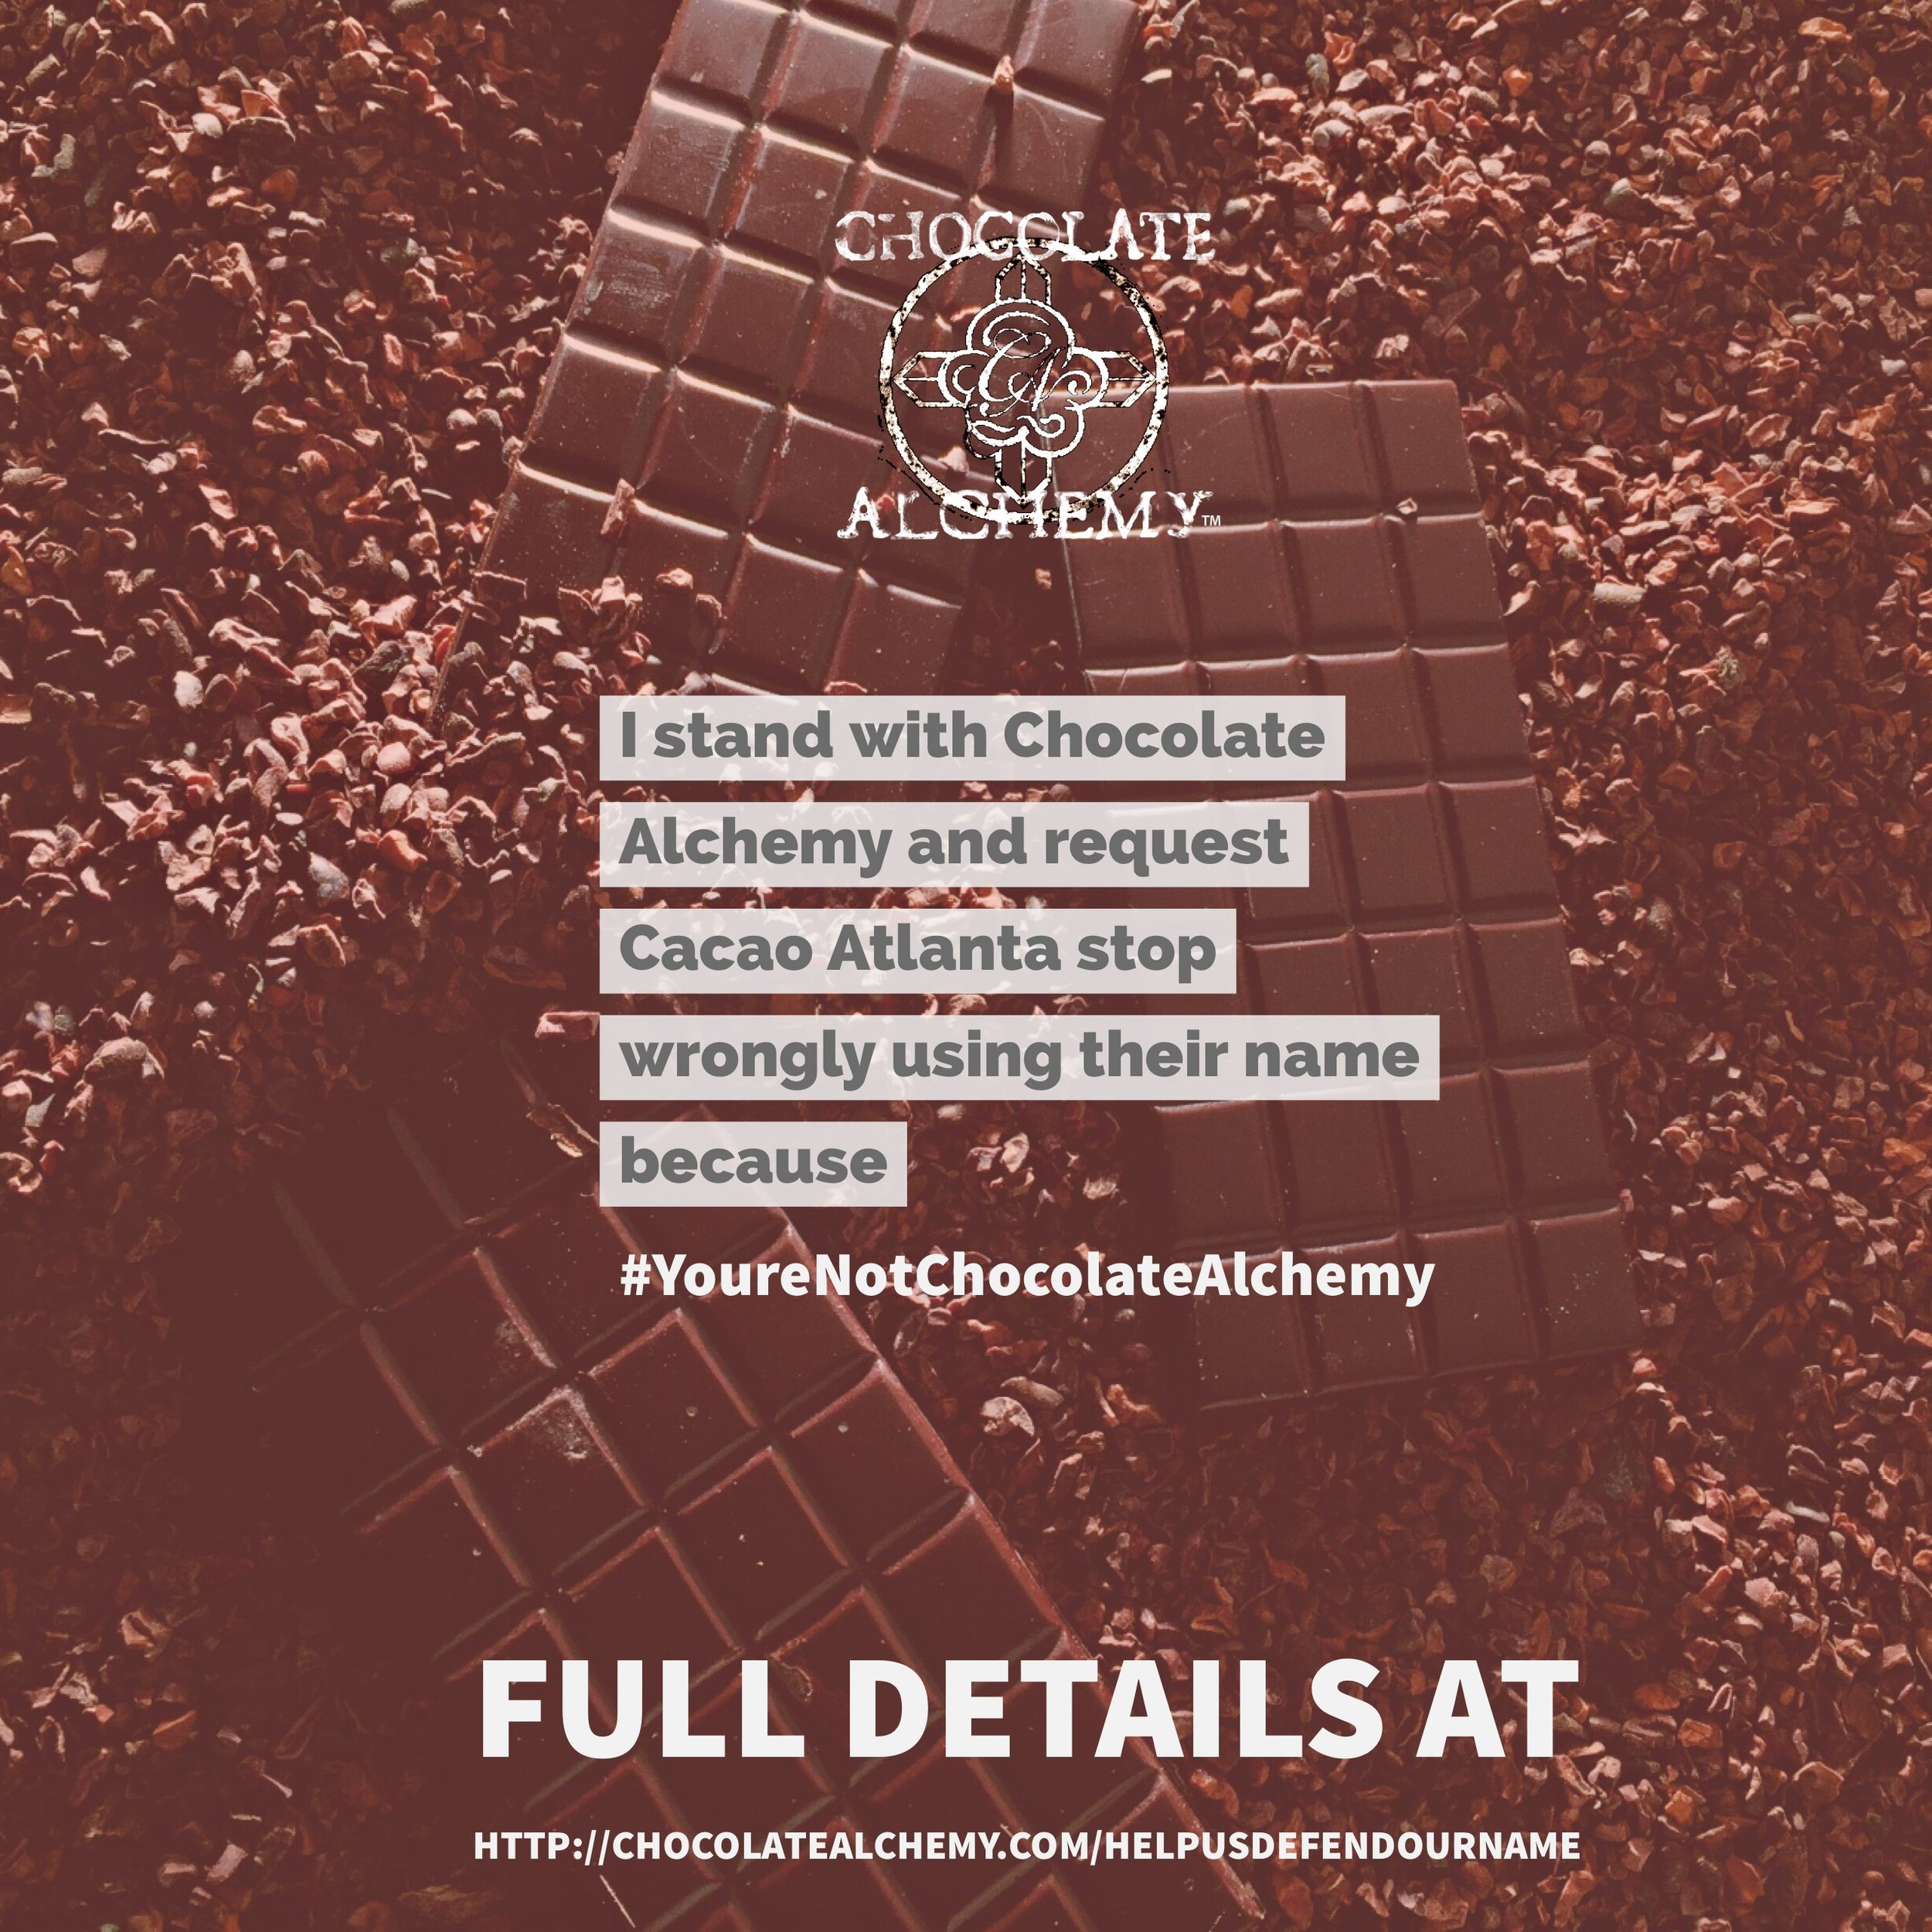 Right click and save this image then Share it, tag them, @cacaoatlanta and use the hashtag #yourenotchocolatealchemy